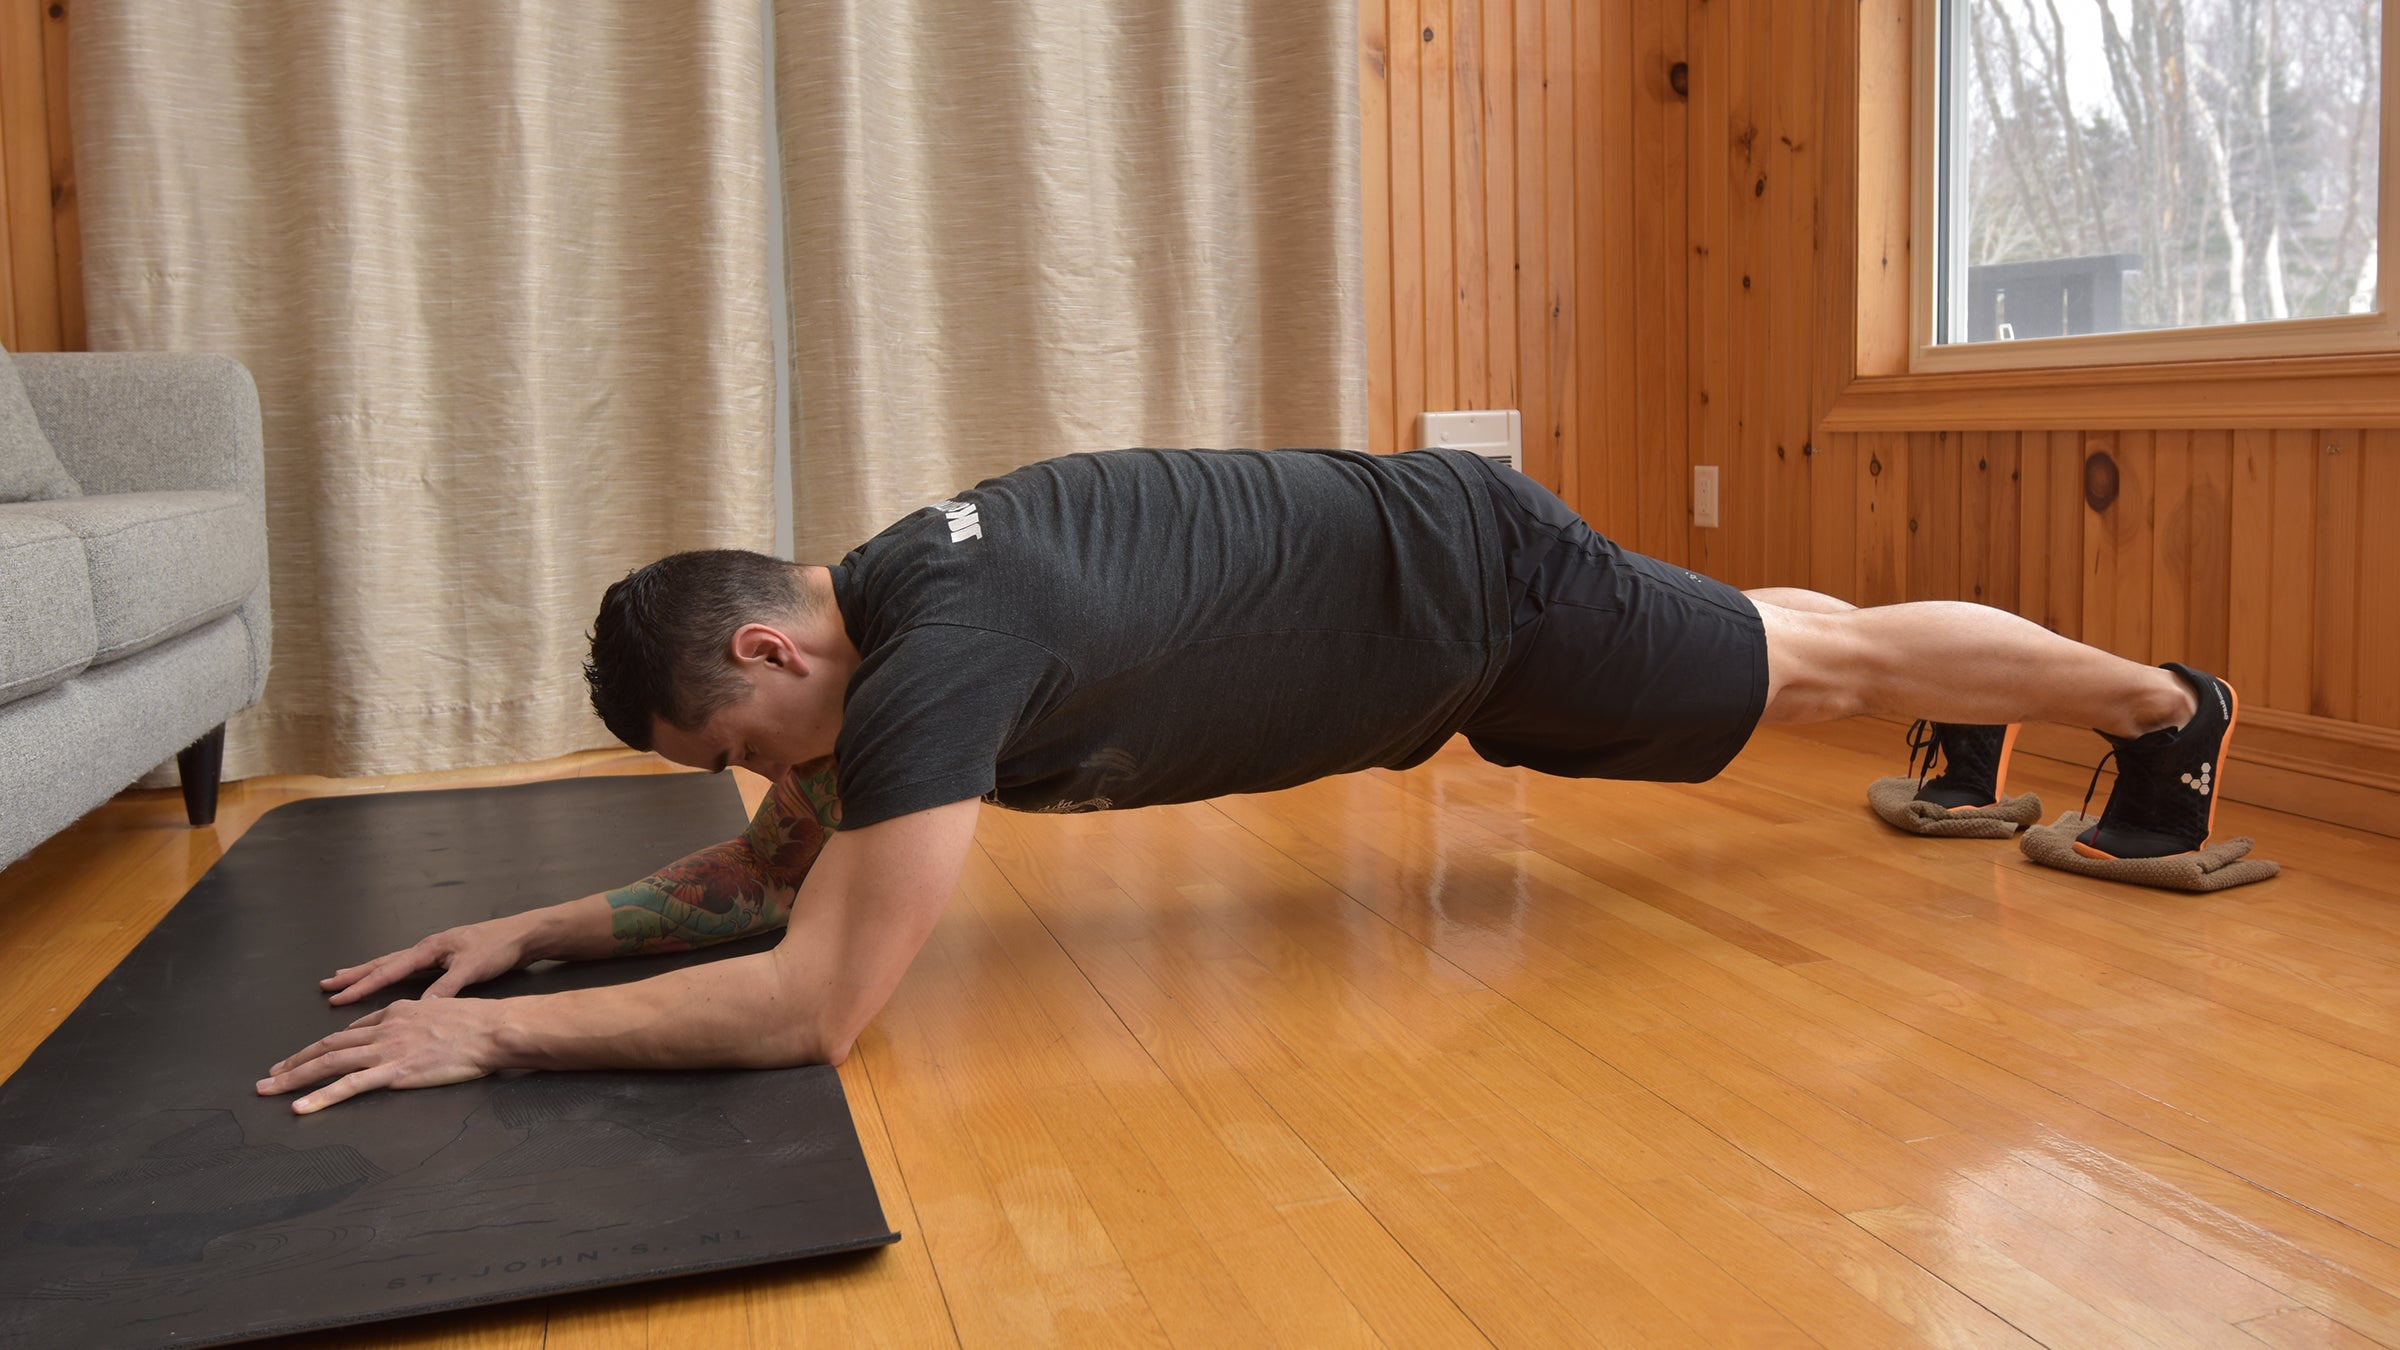 saw plank exercise